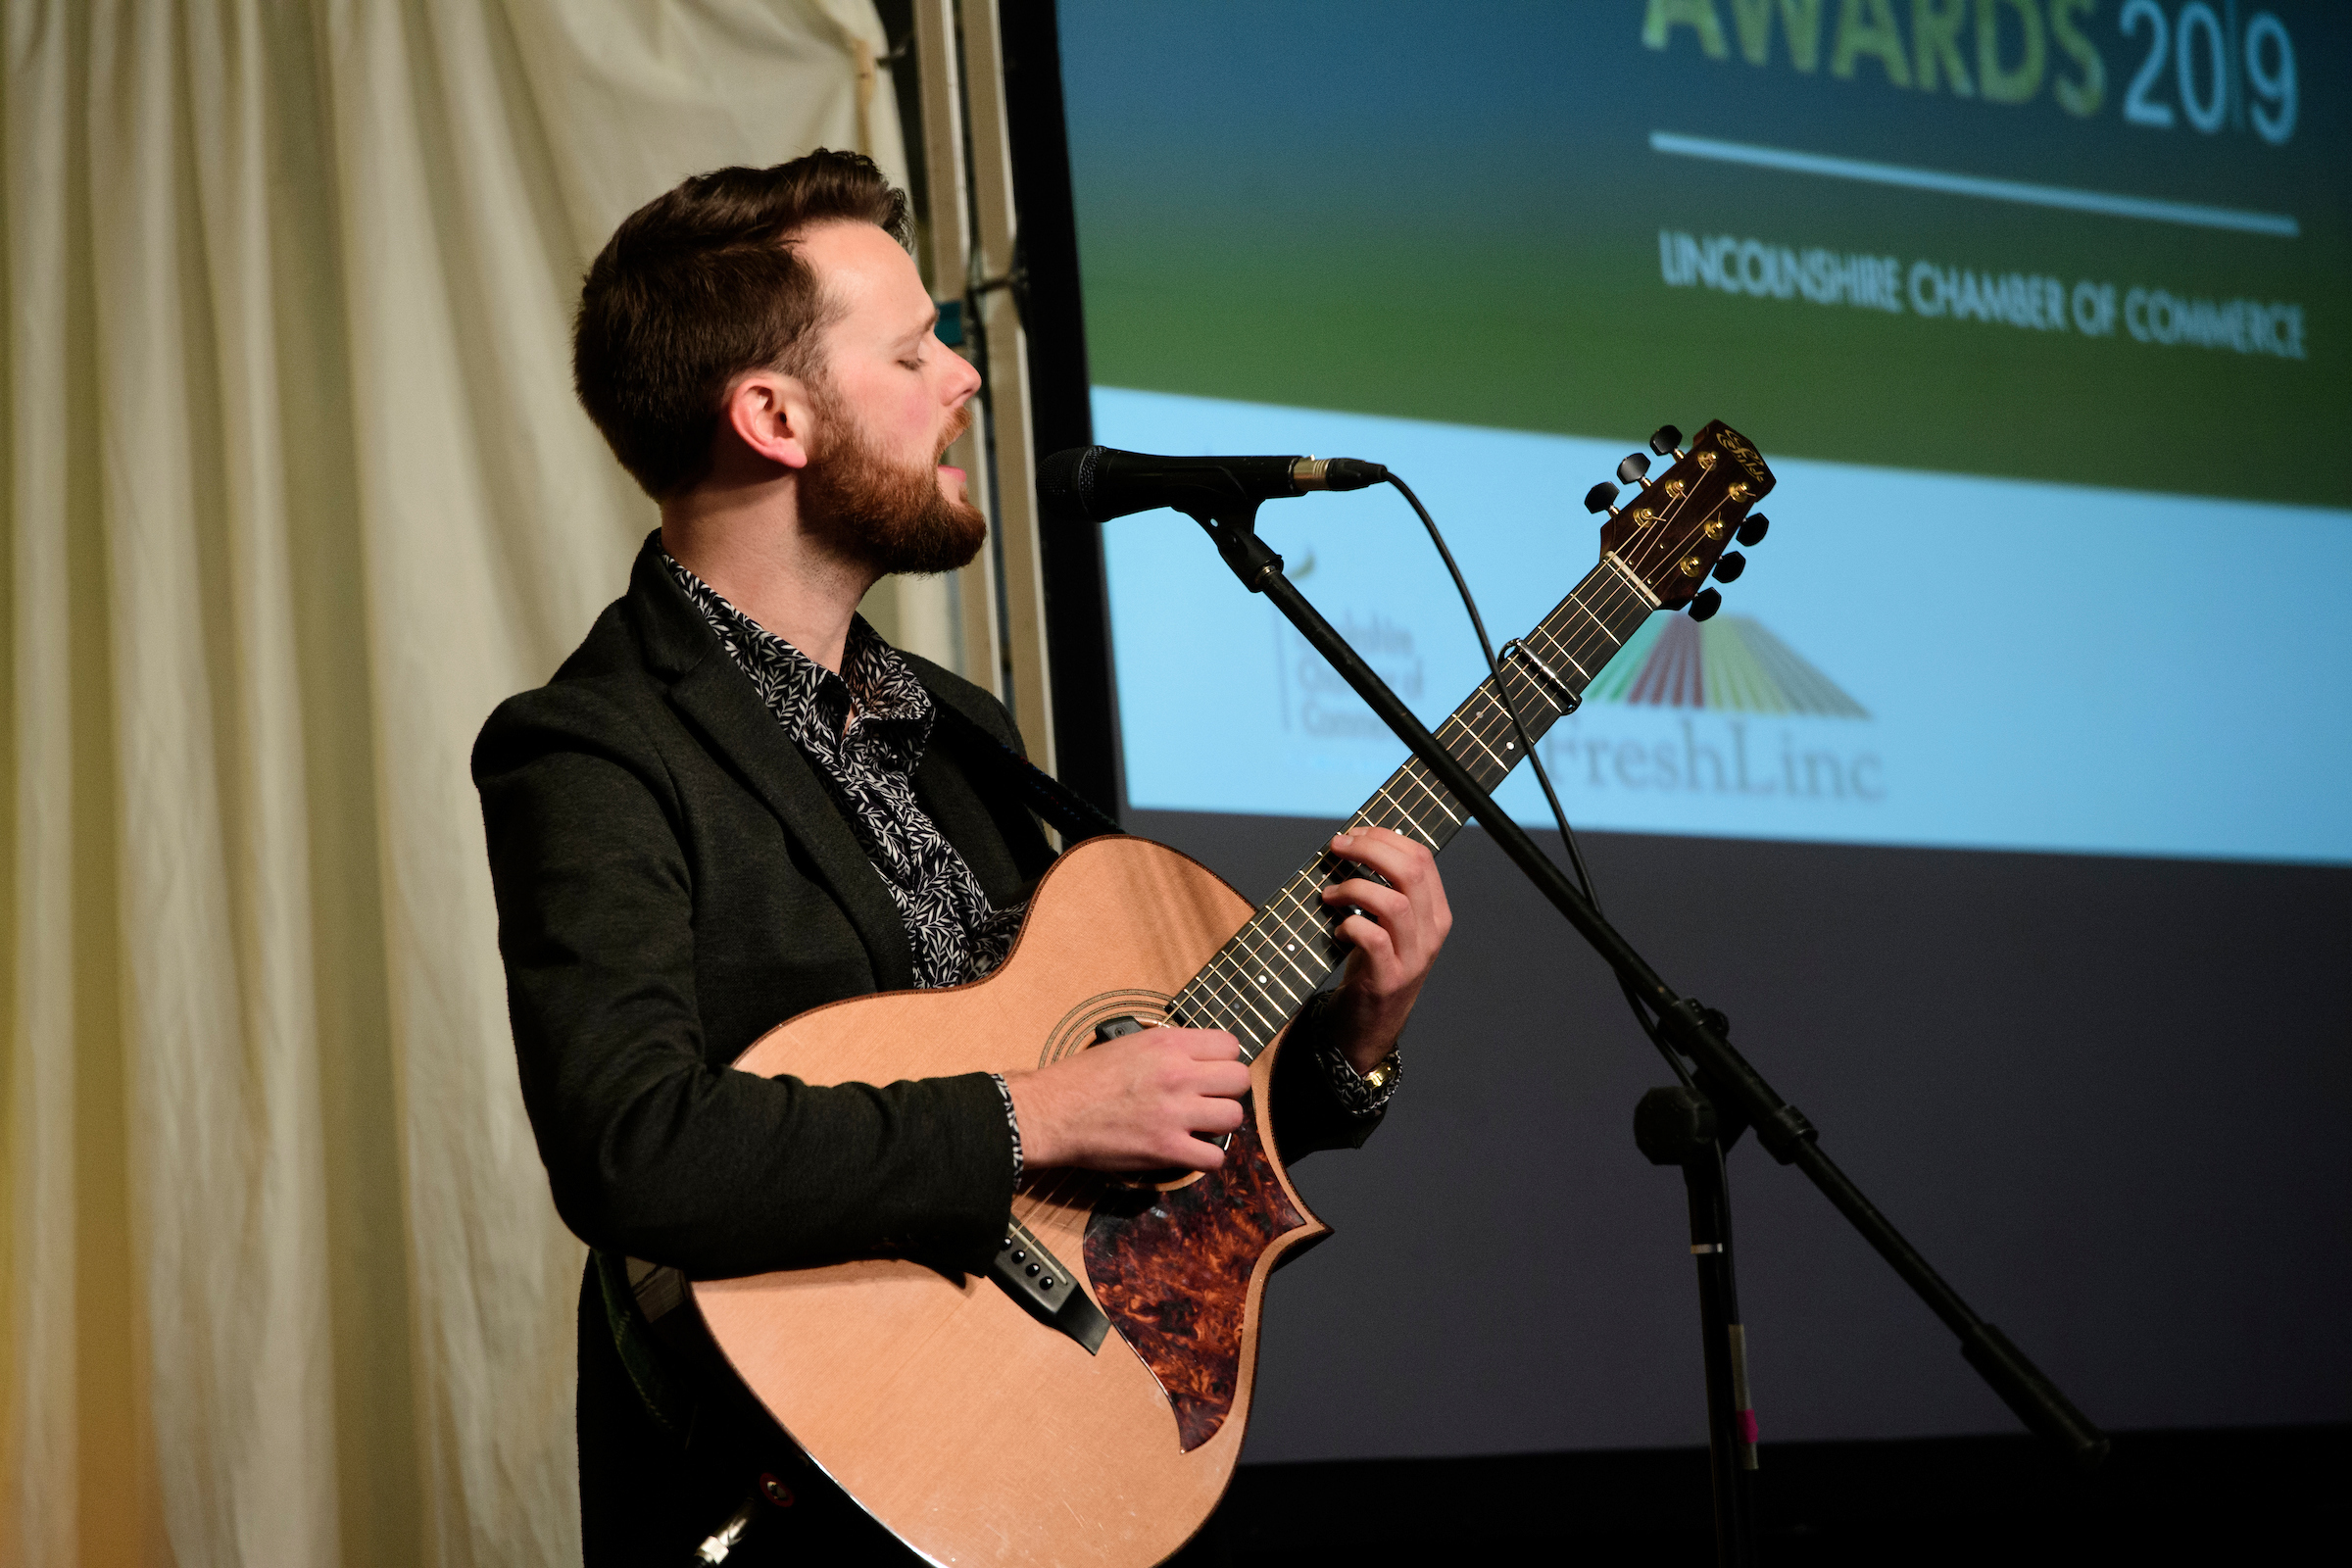 A young man with acoustic guitar, Elliott Morris, playing onstage at the South Holland Business Awards 2019